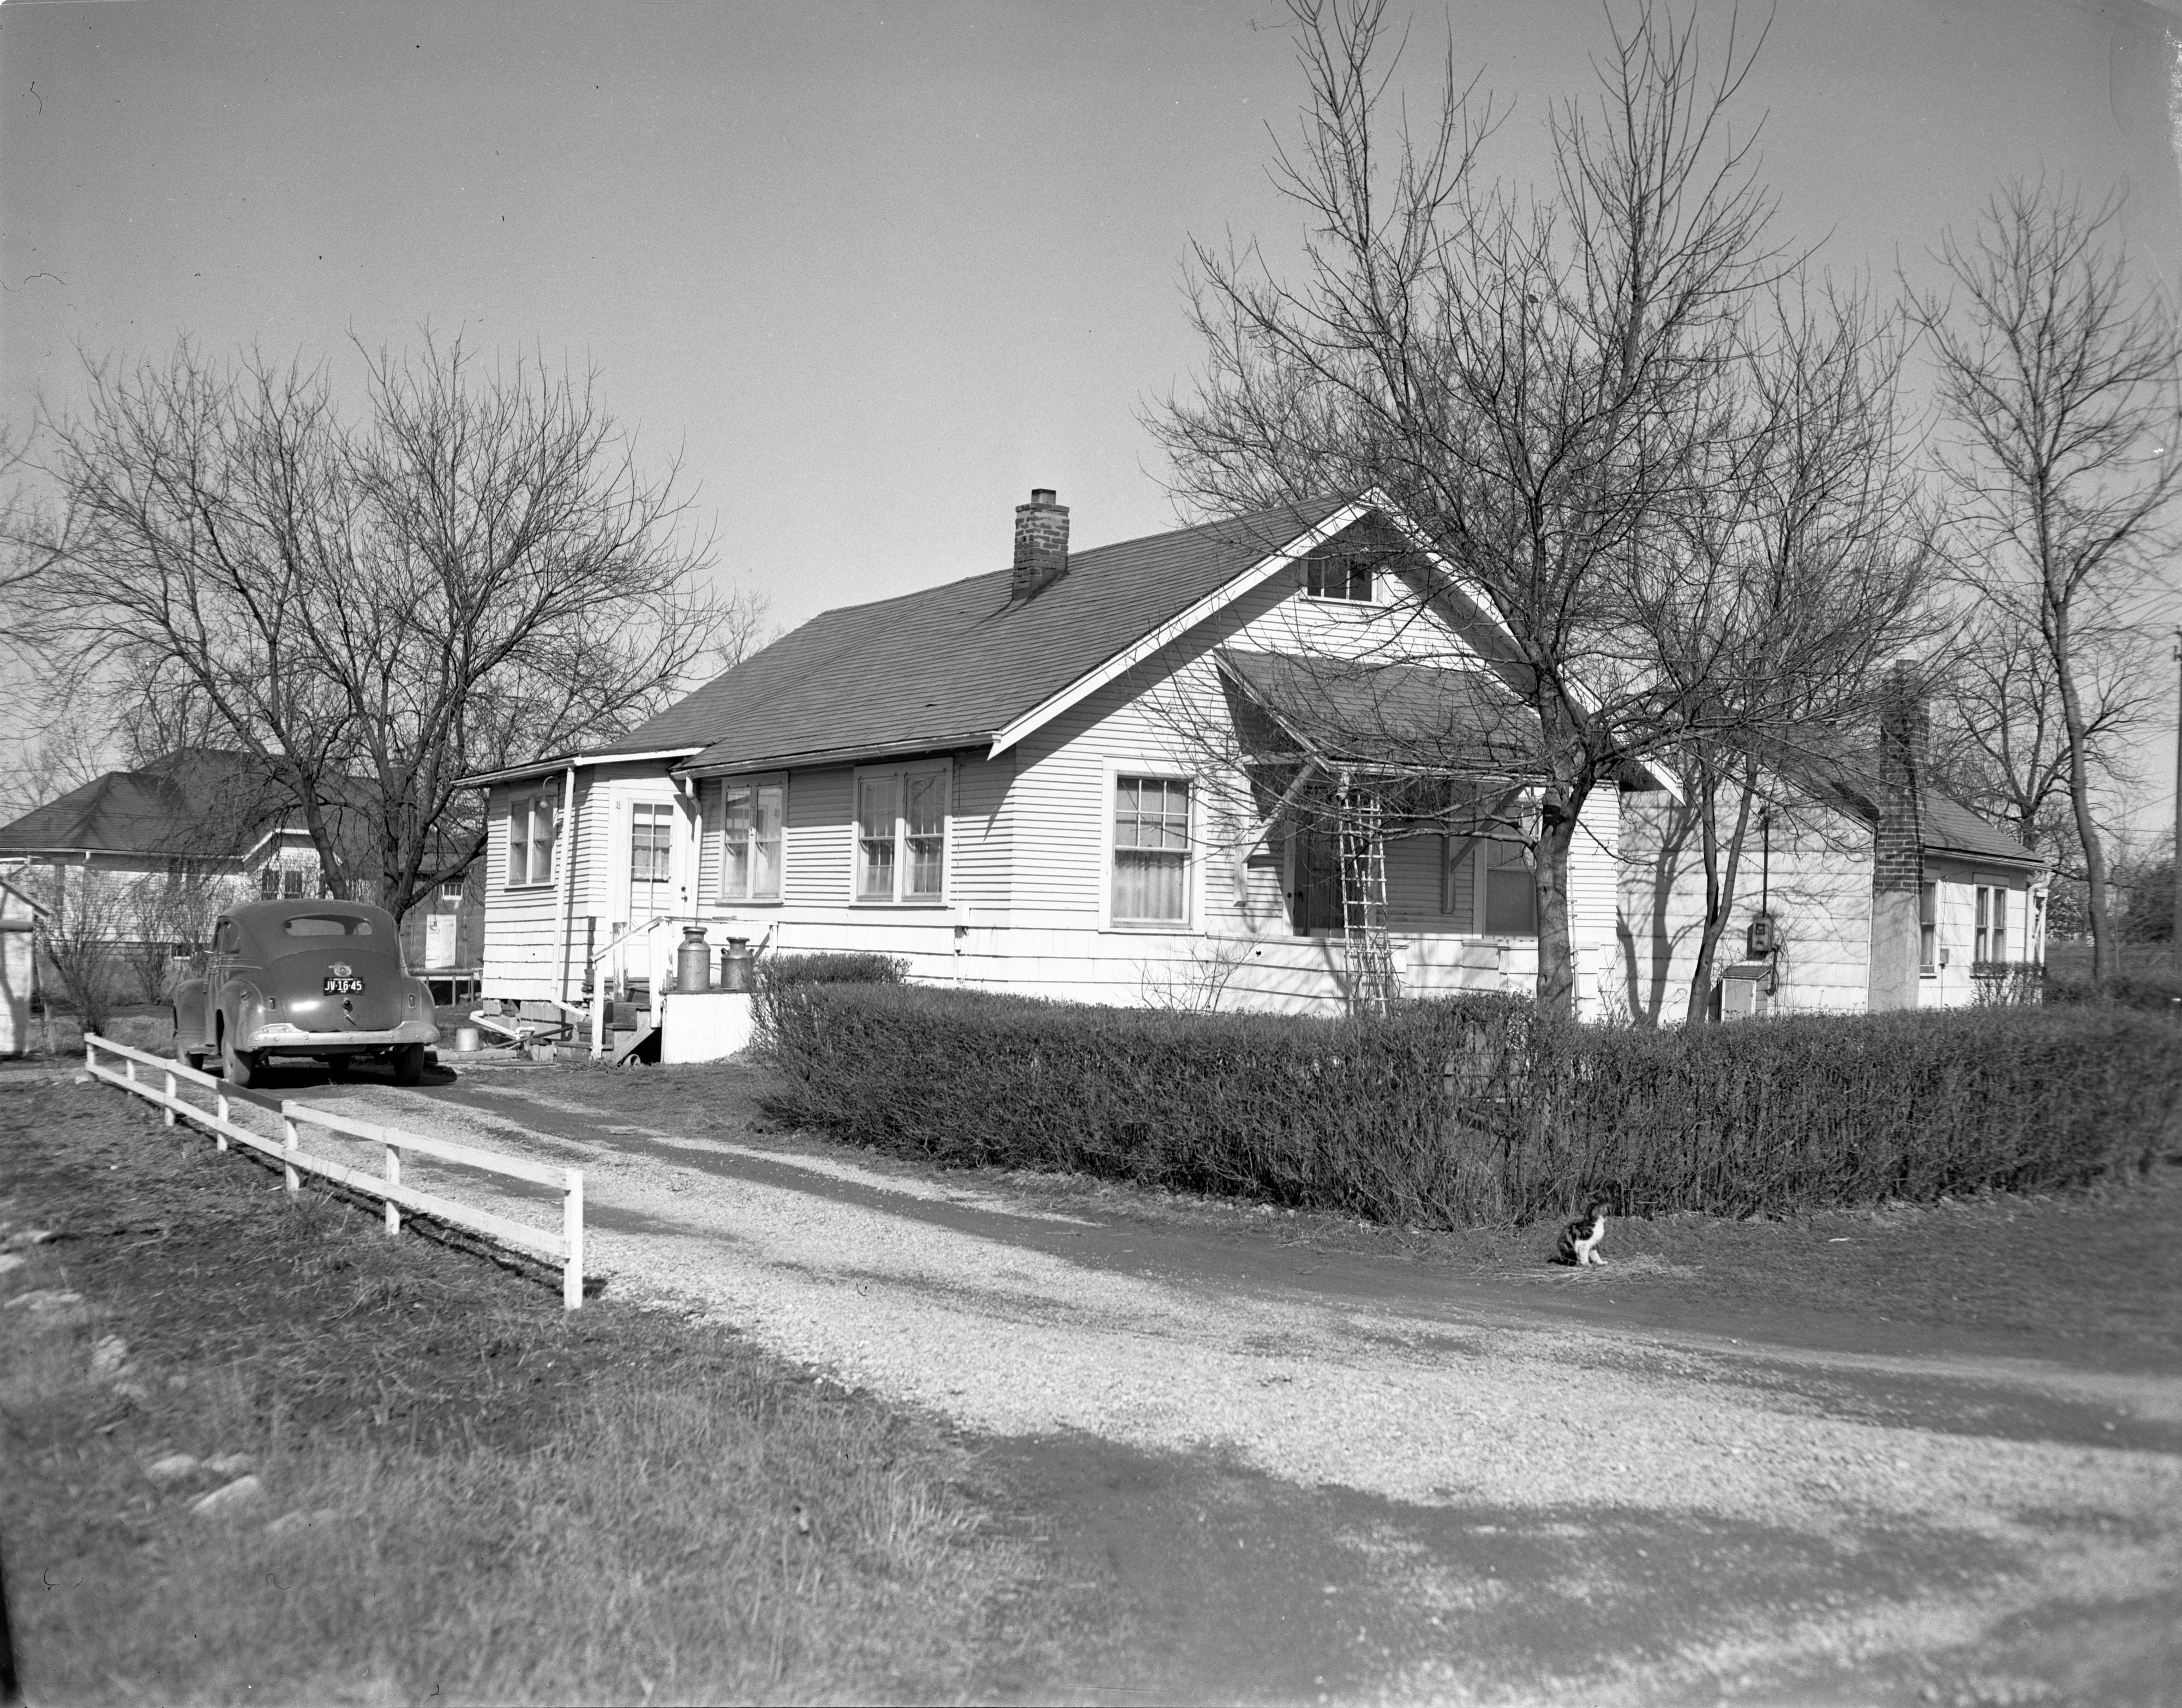 McConnell Home - 1675 Lexington Road, April 1949 image